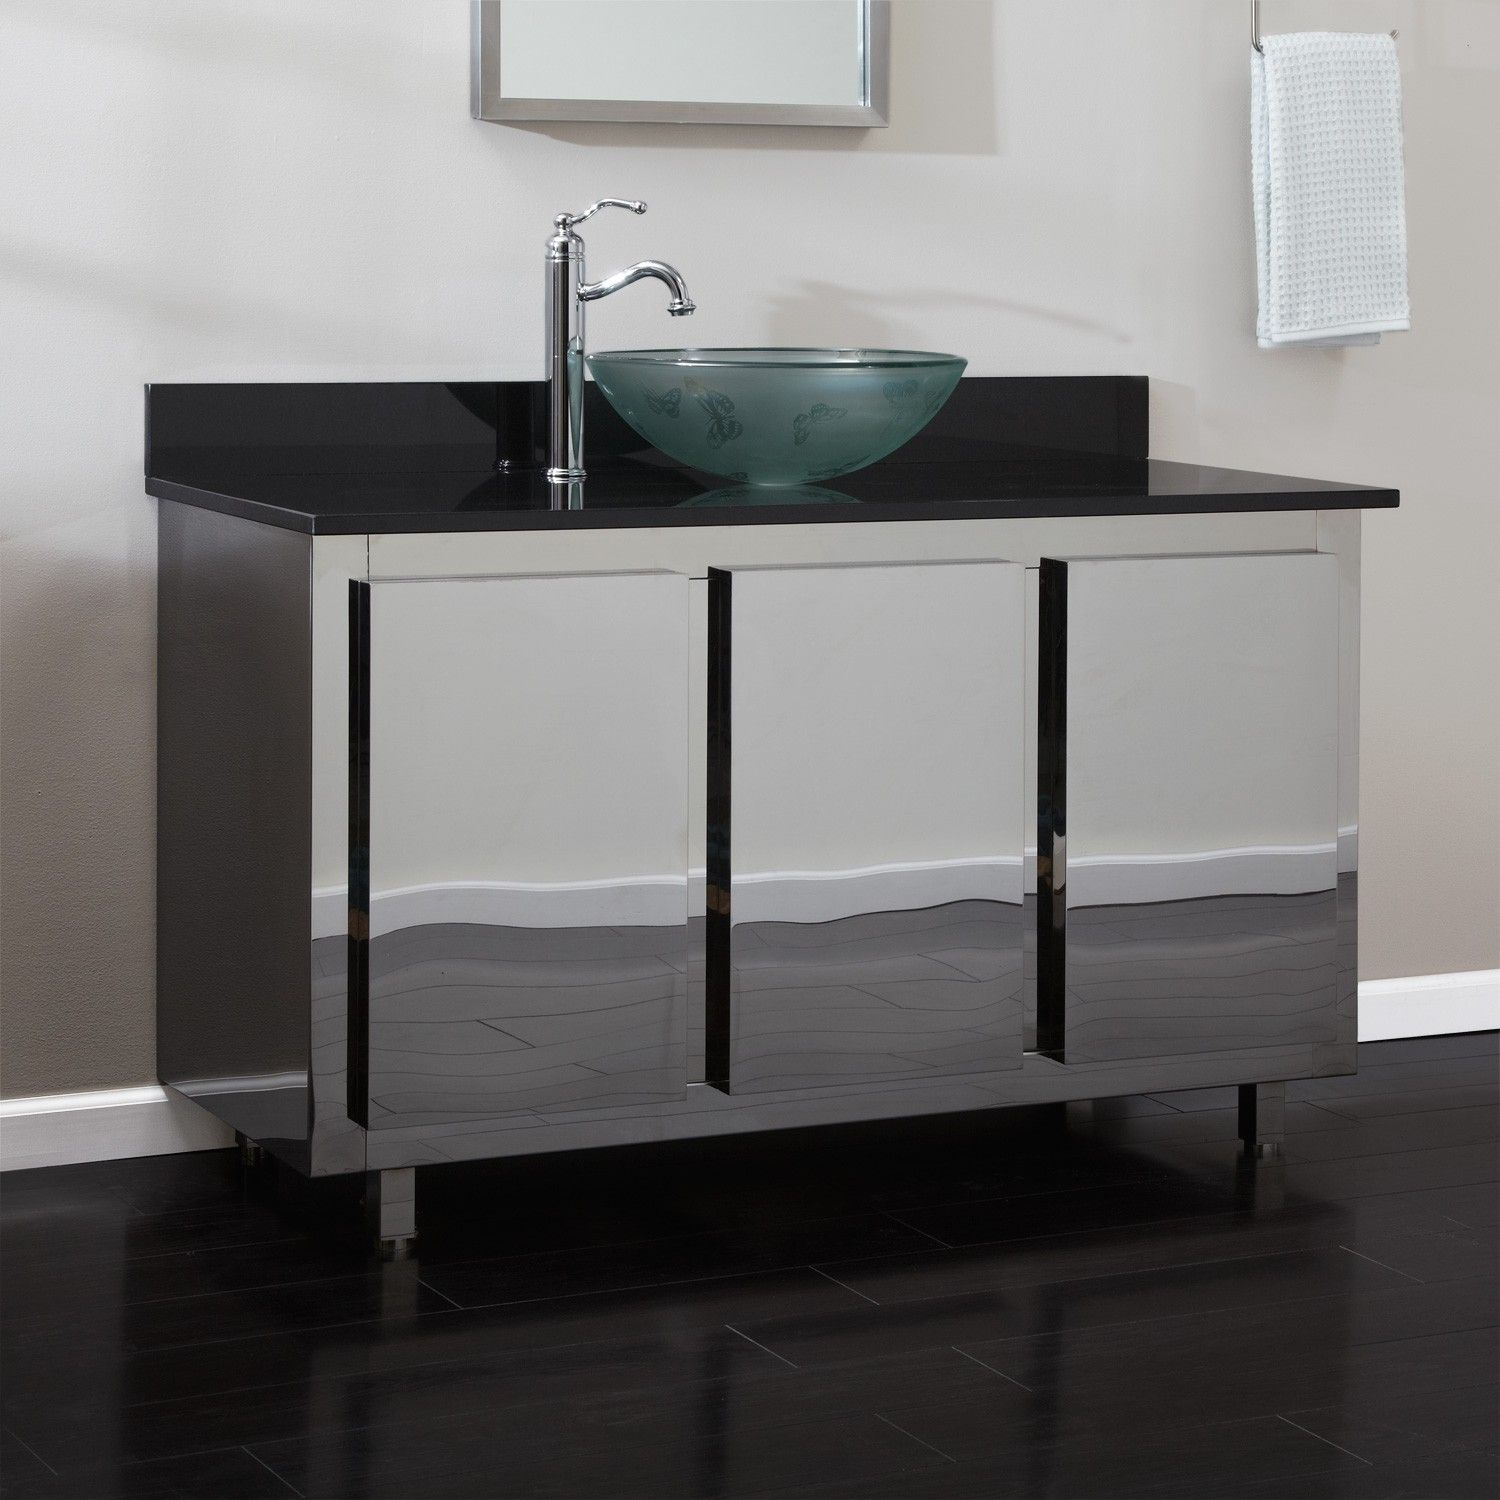 Stainless Steel Bathroom Vanity Vanities Vessel Sink